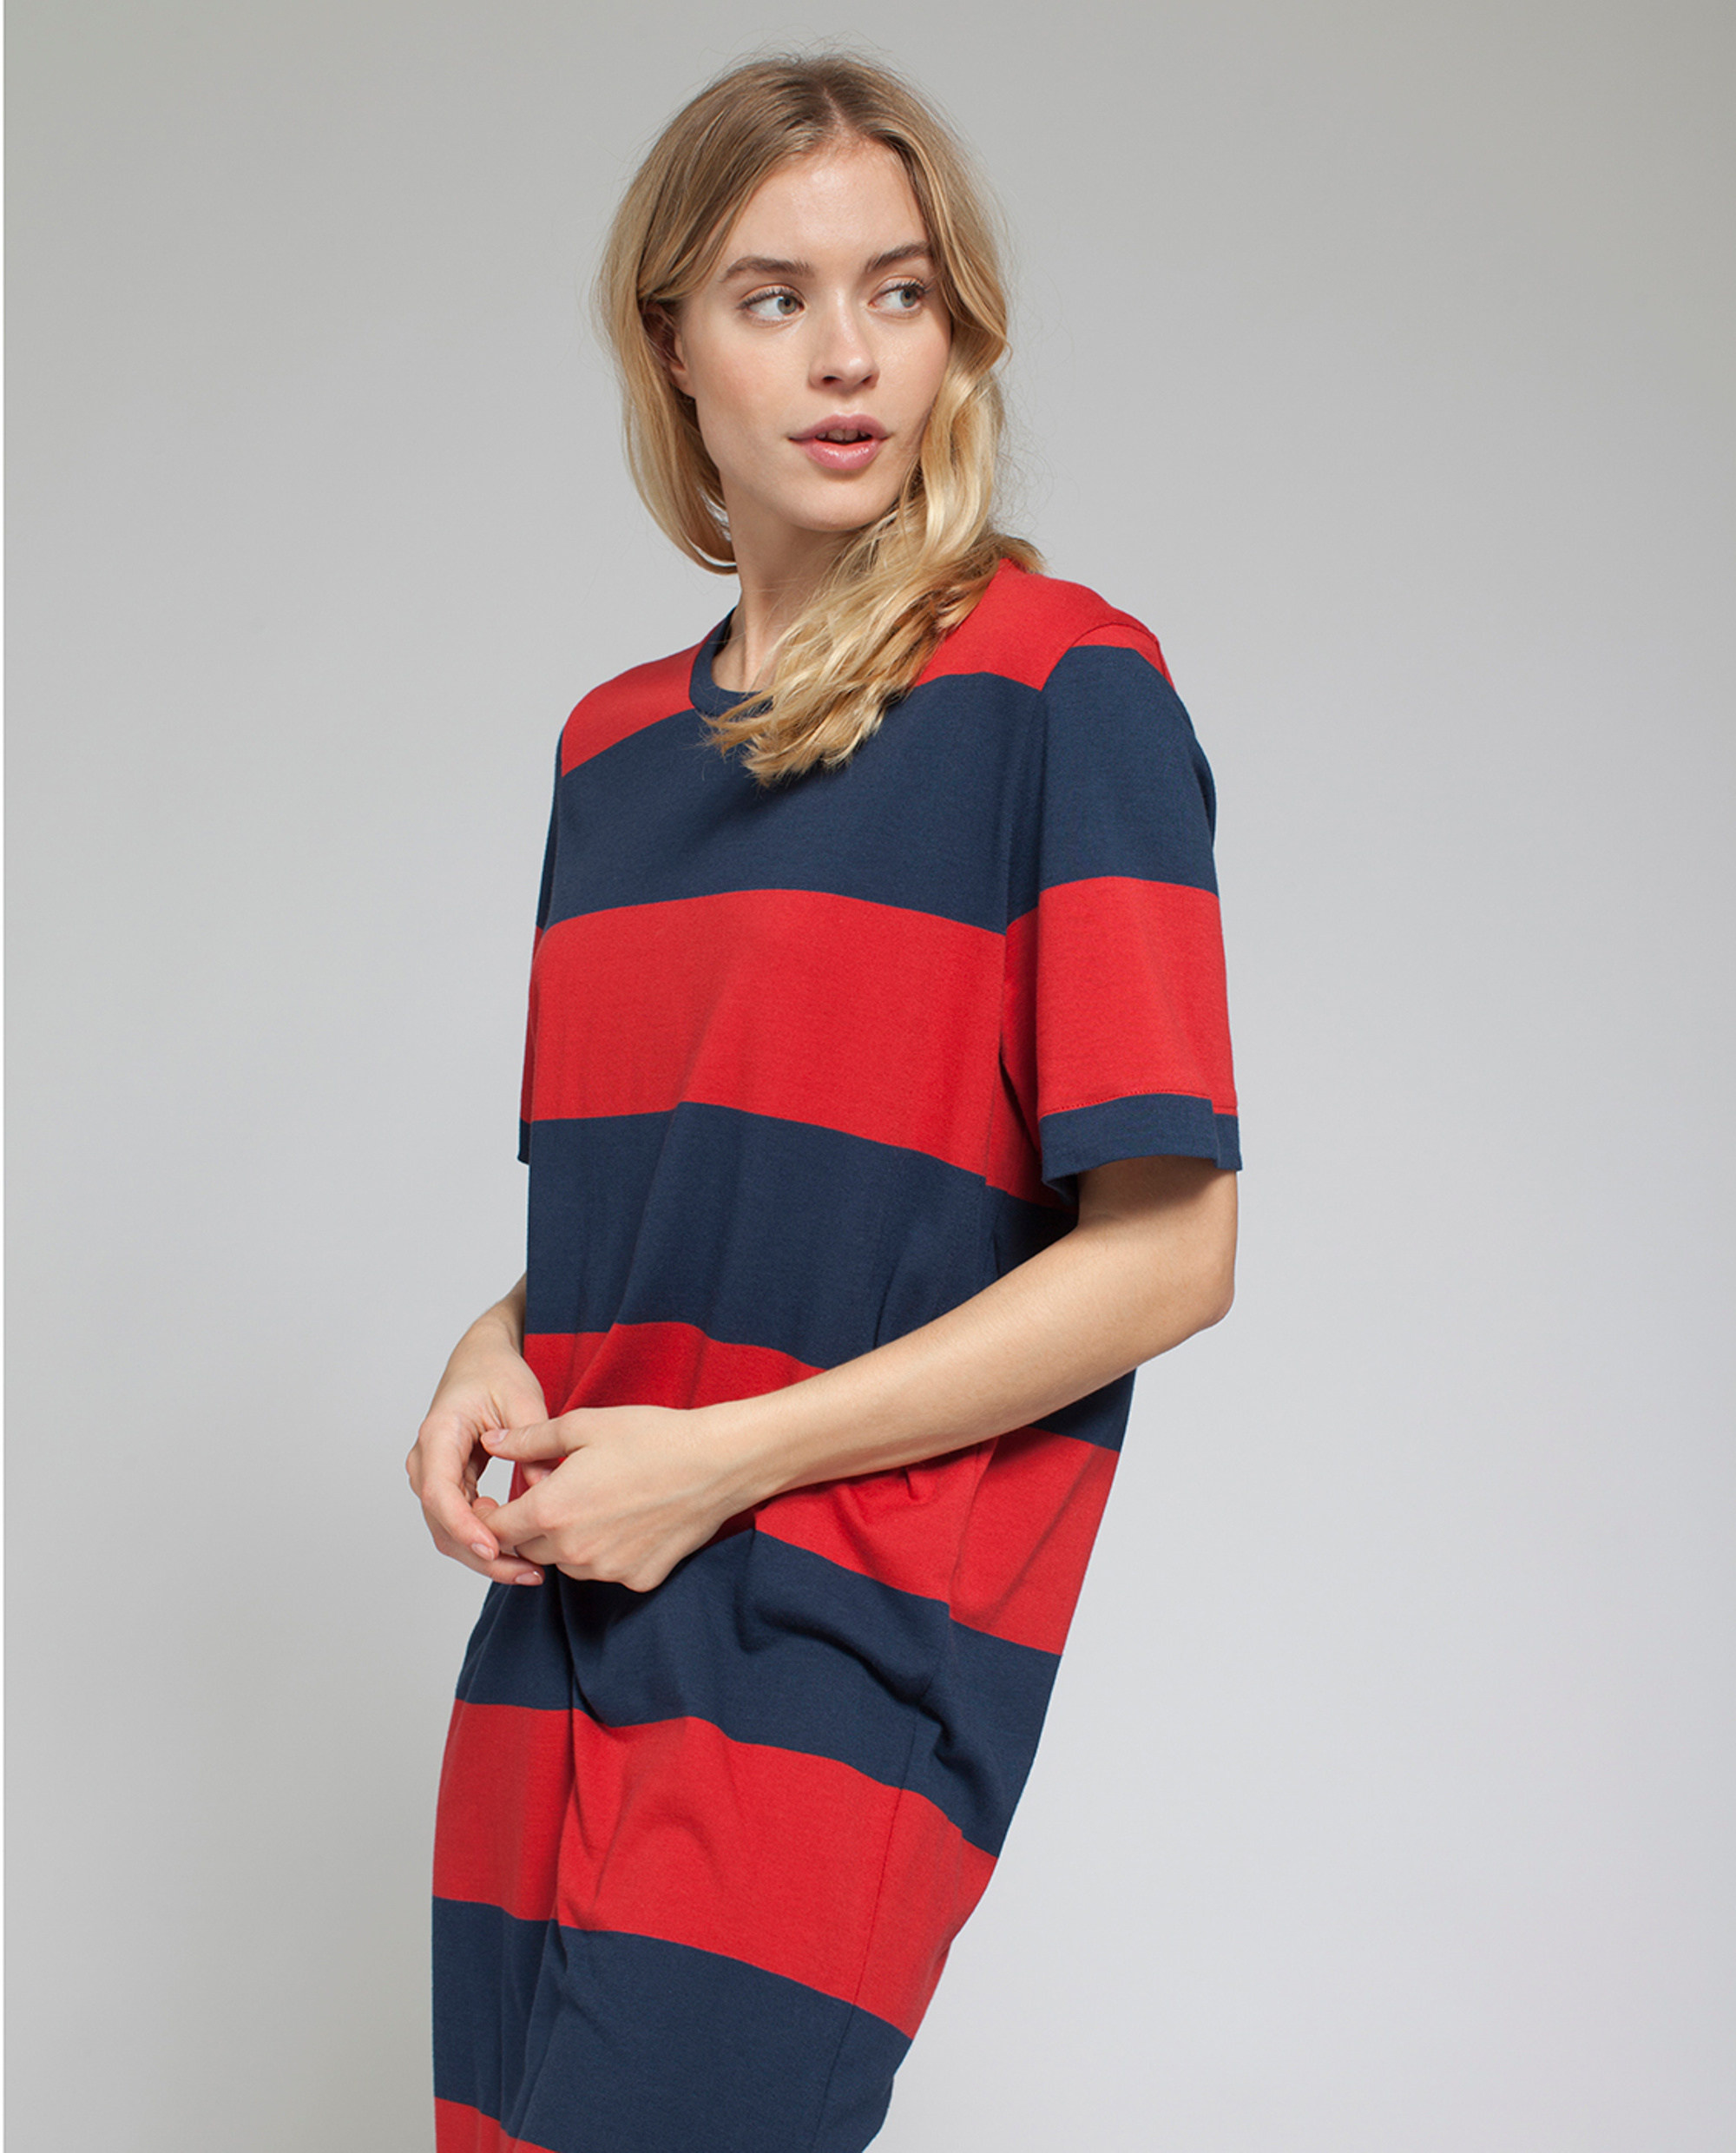 Lali Jersey Dress, Blue/Red